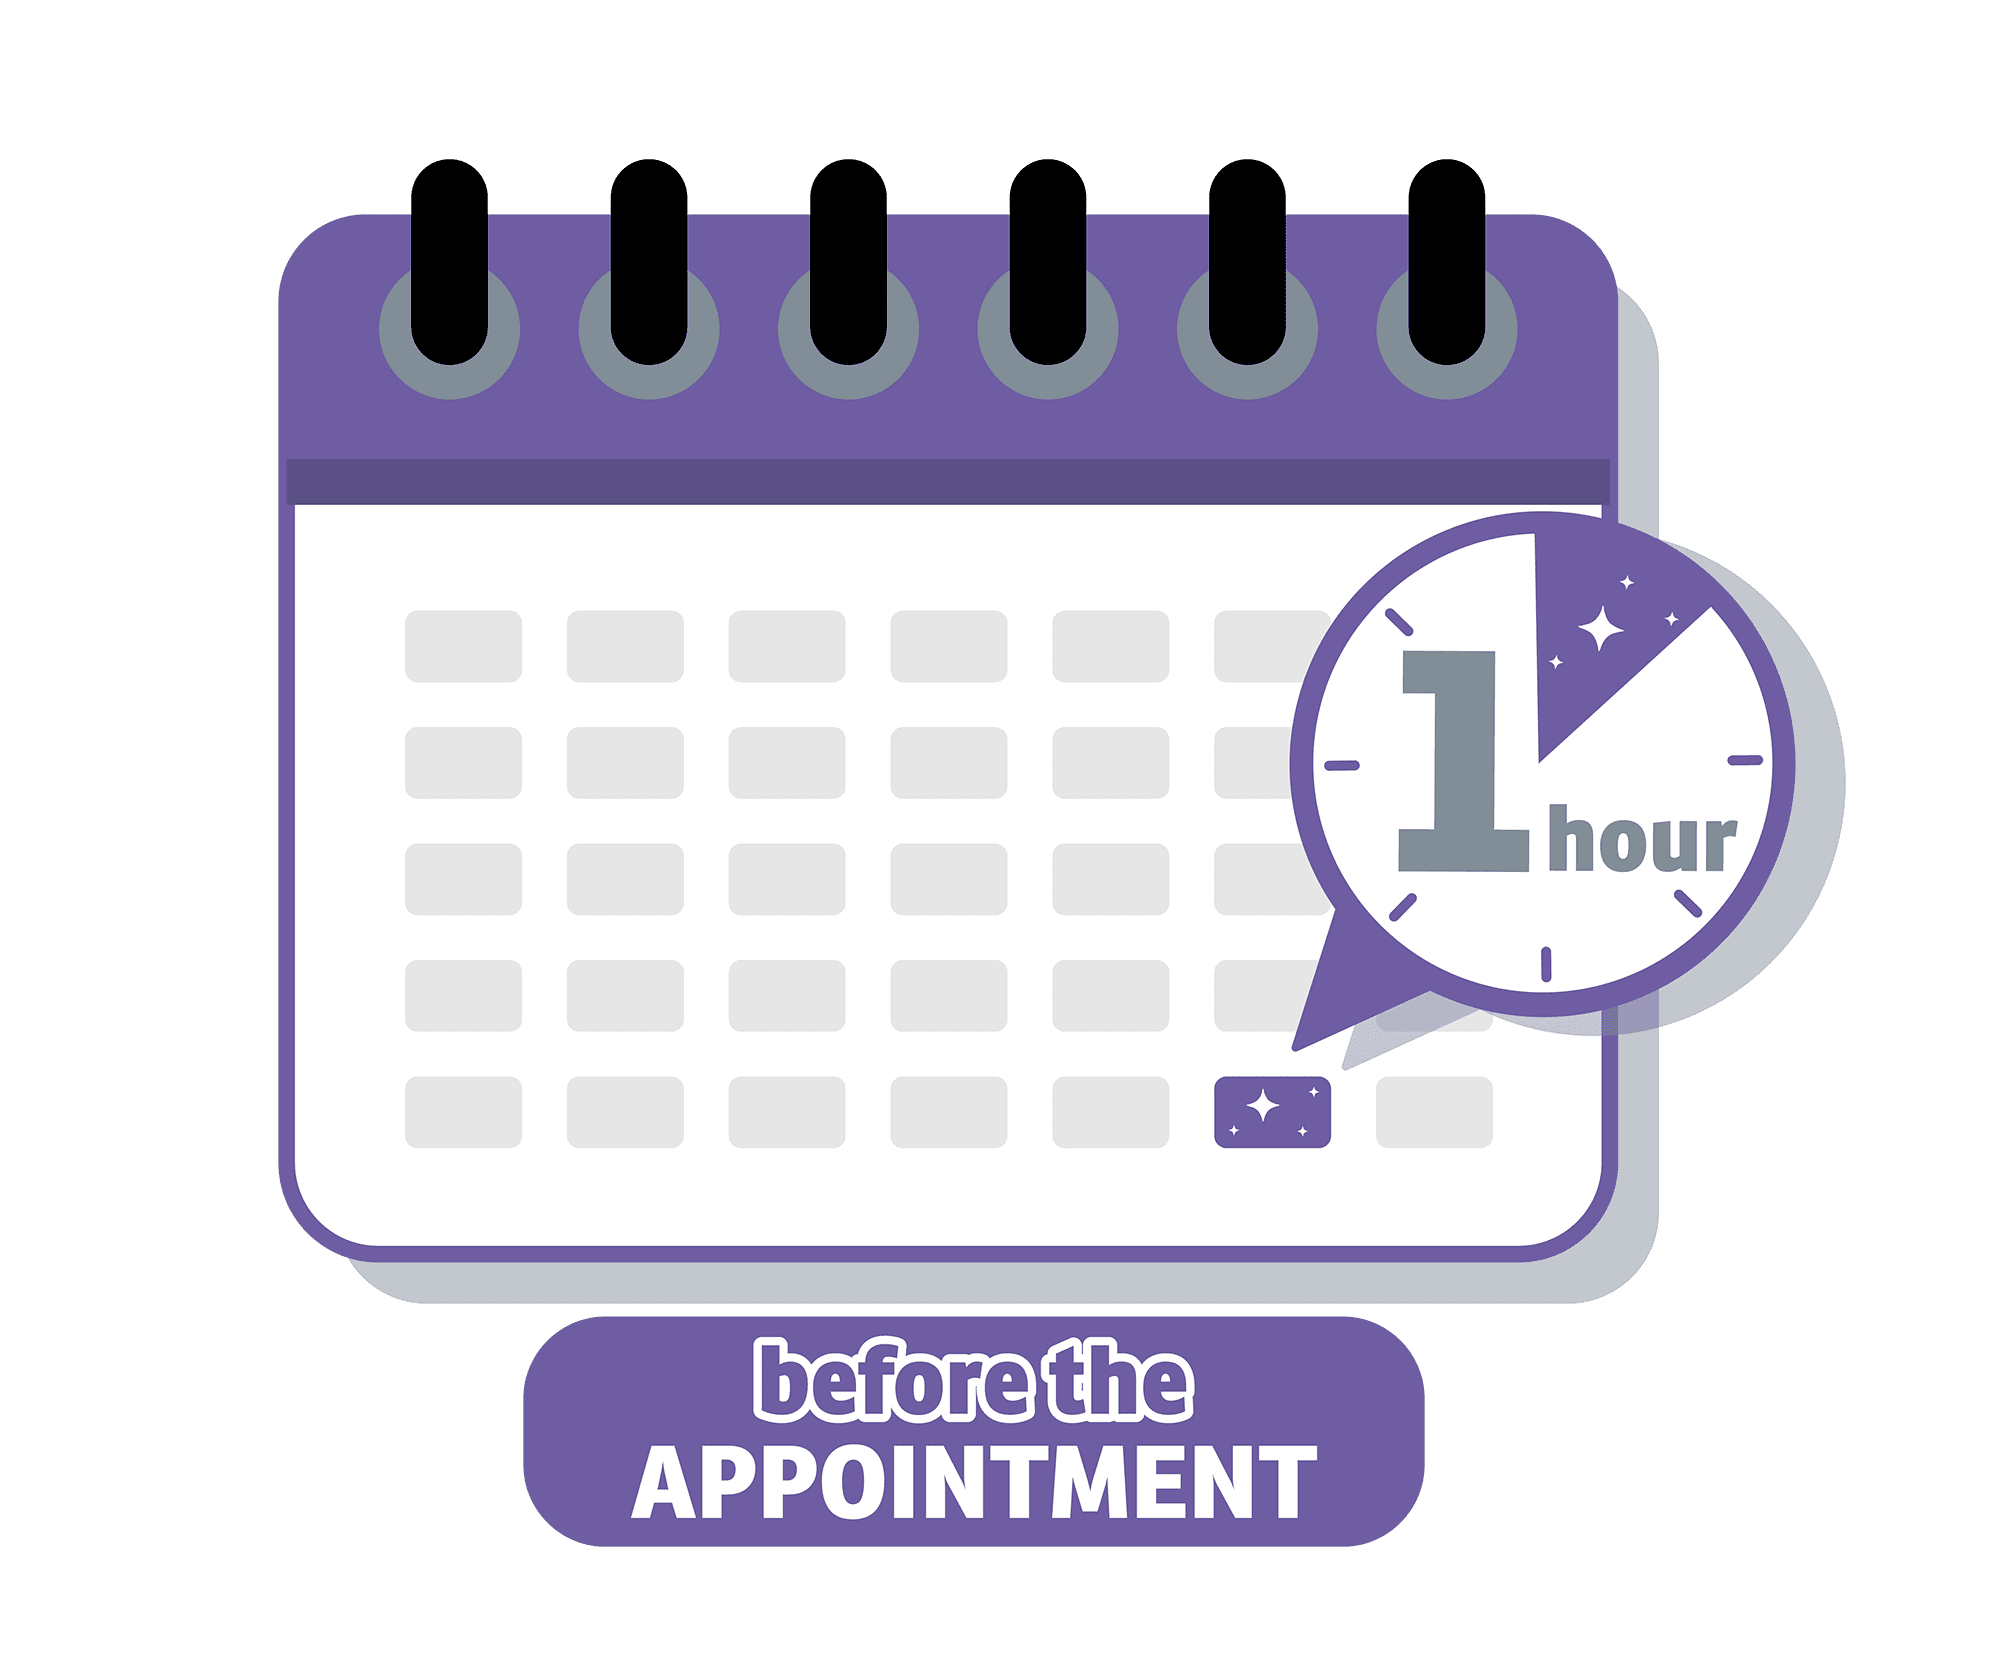 Tint Wiz Appointment Reminder 1 Hour